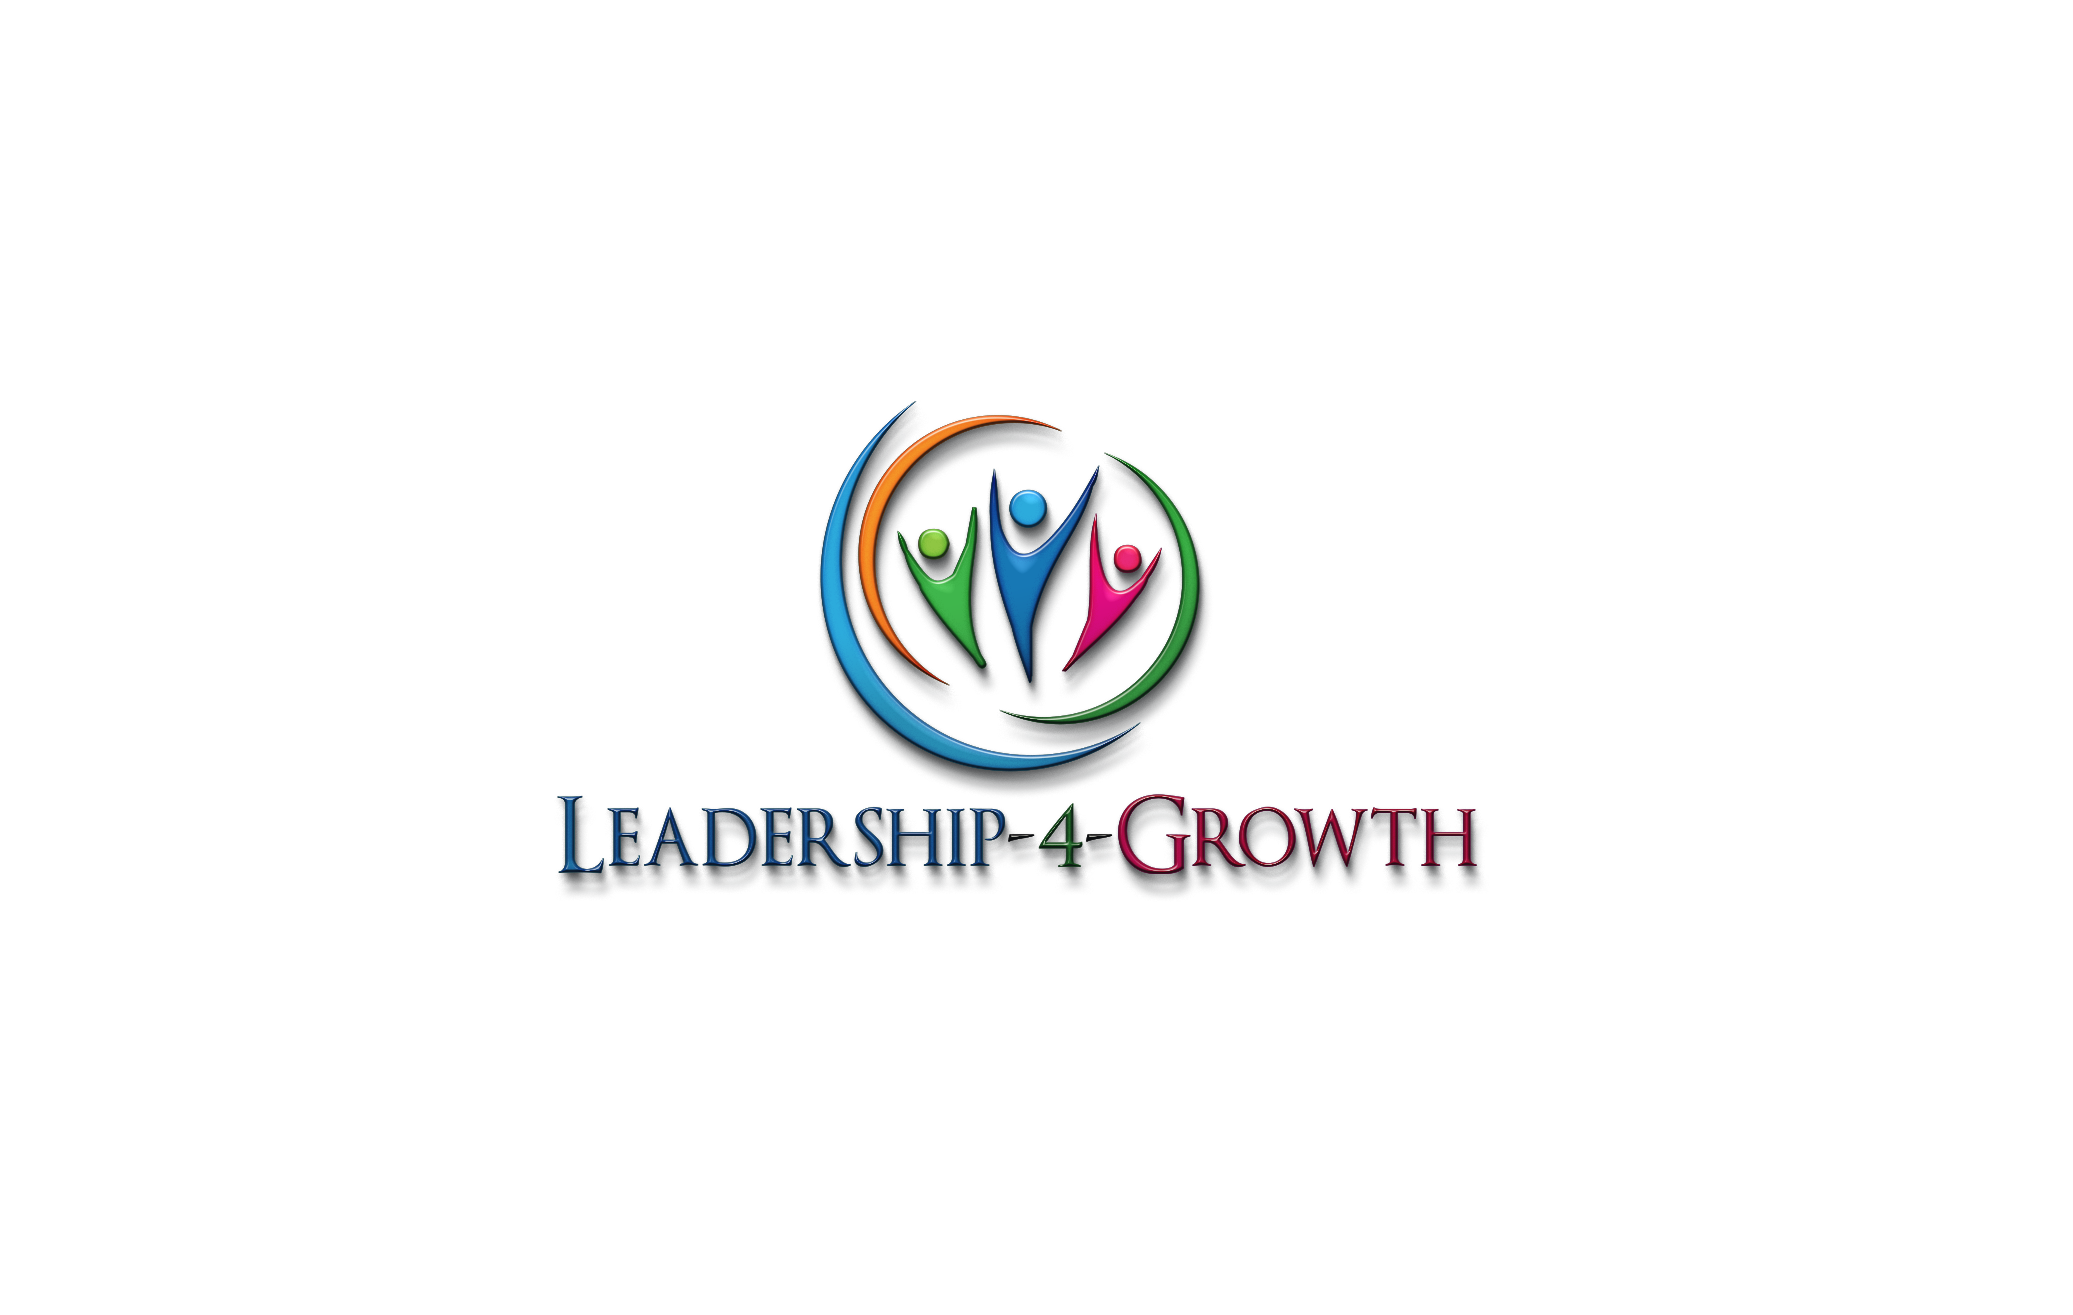 Leadership-4-Growth.jpg